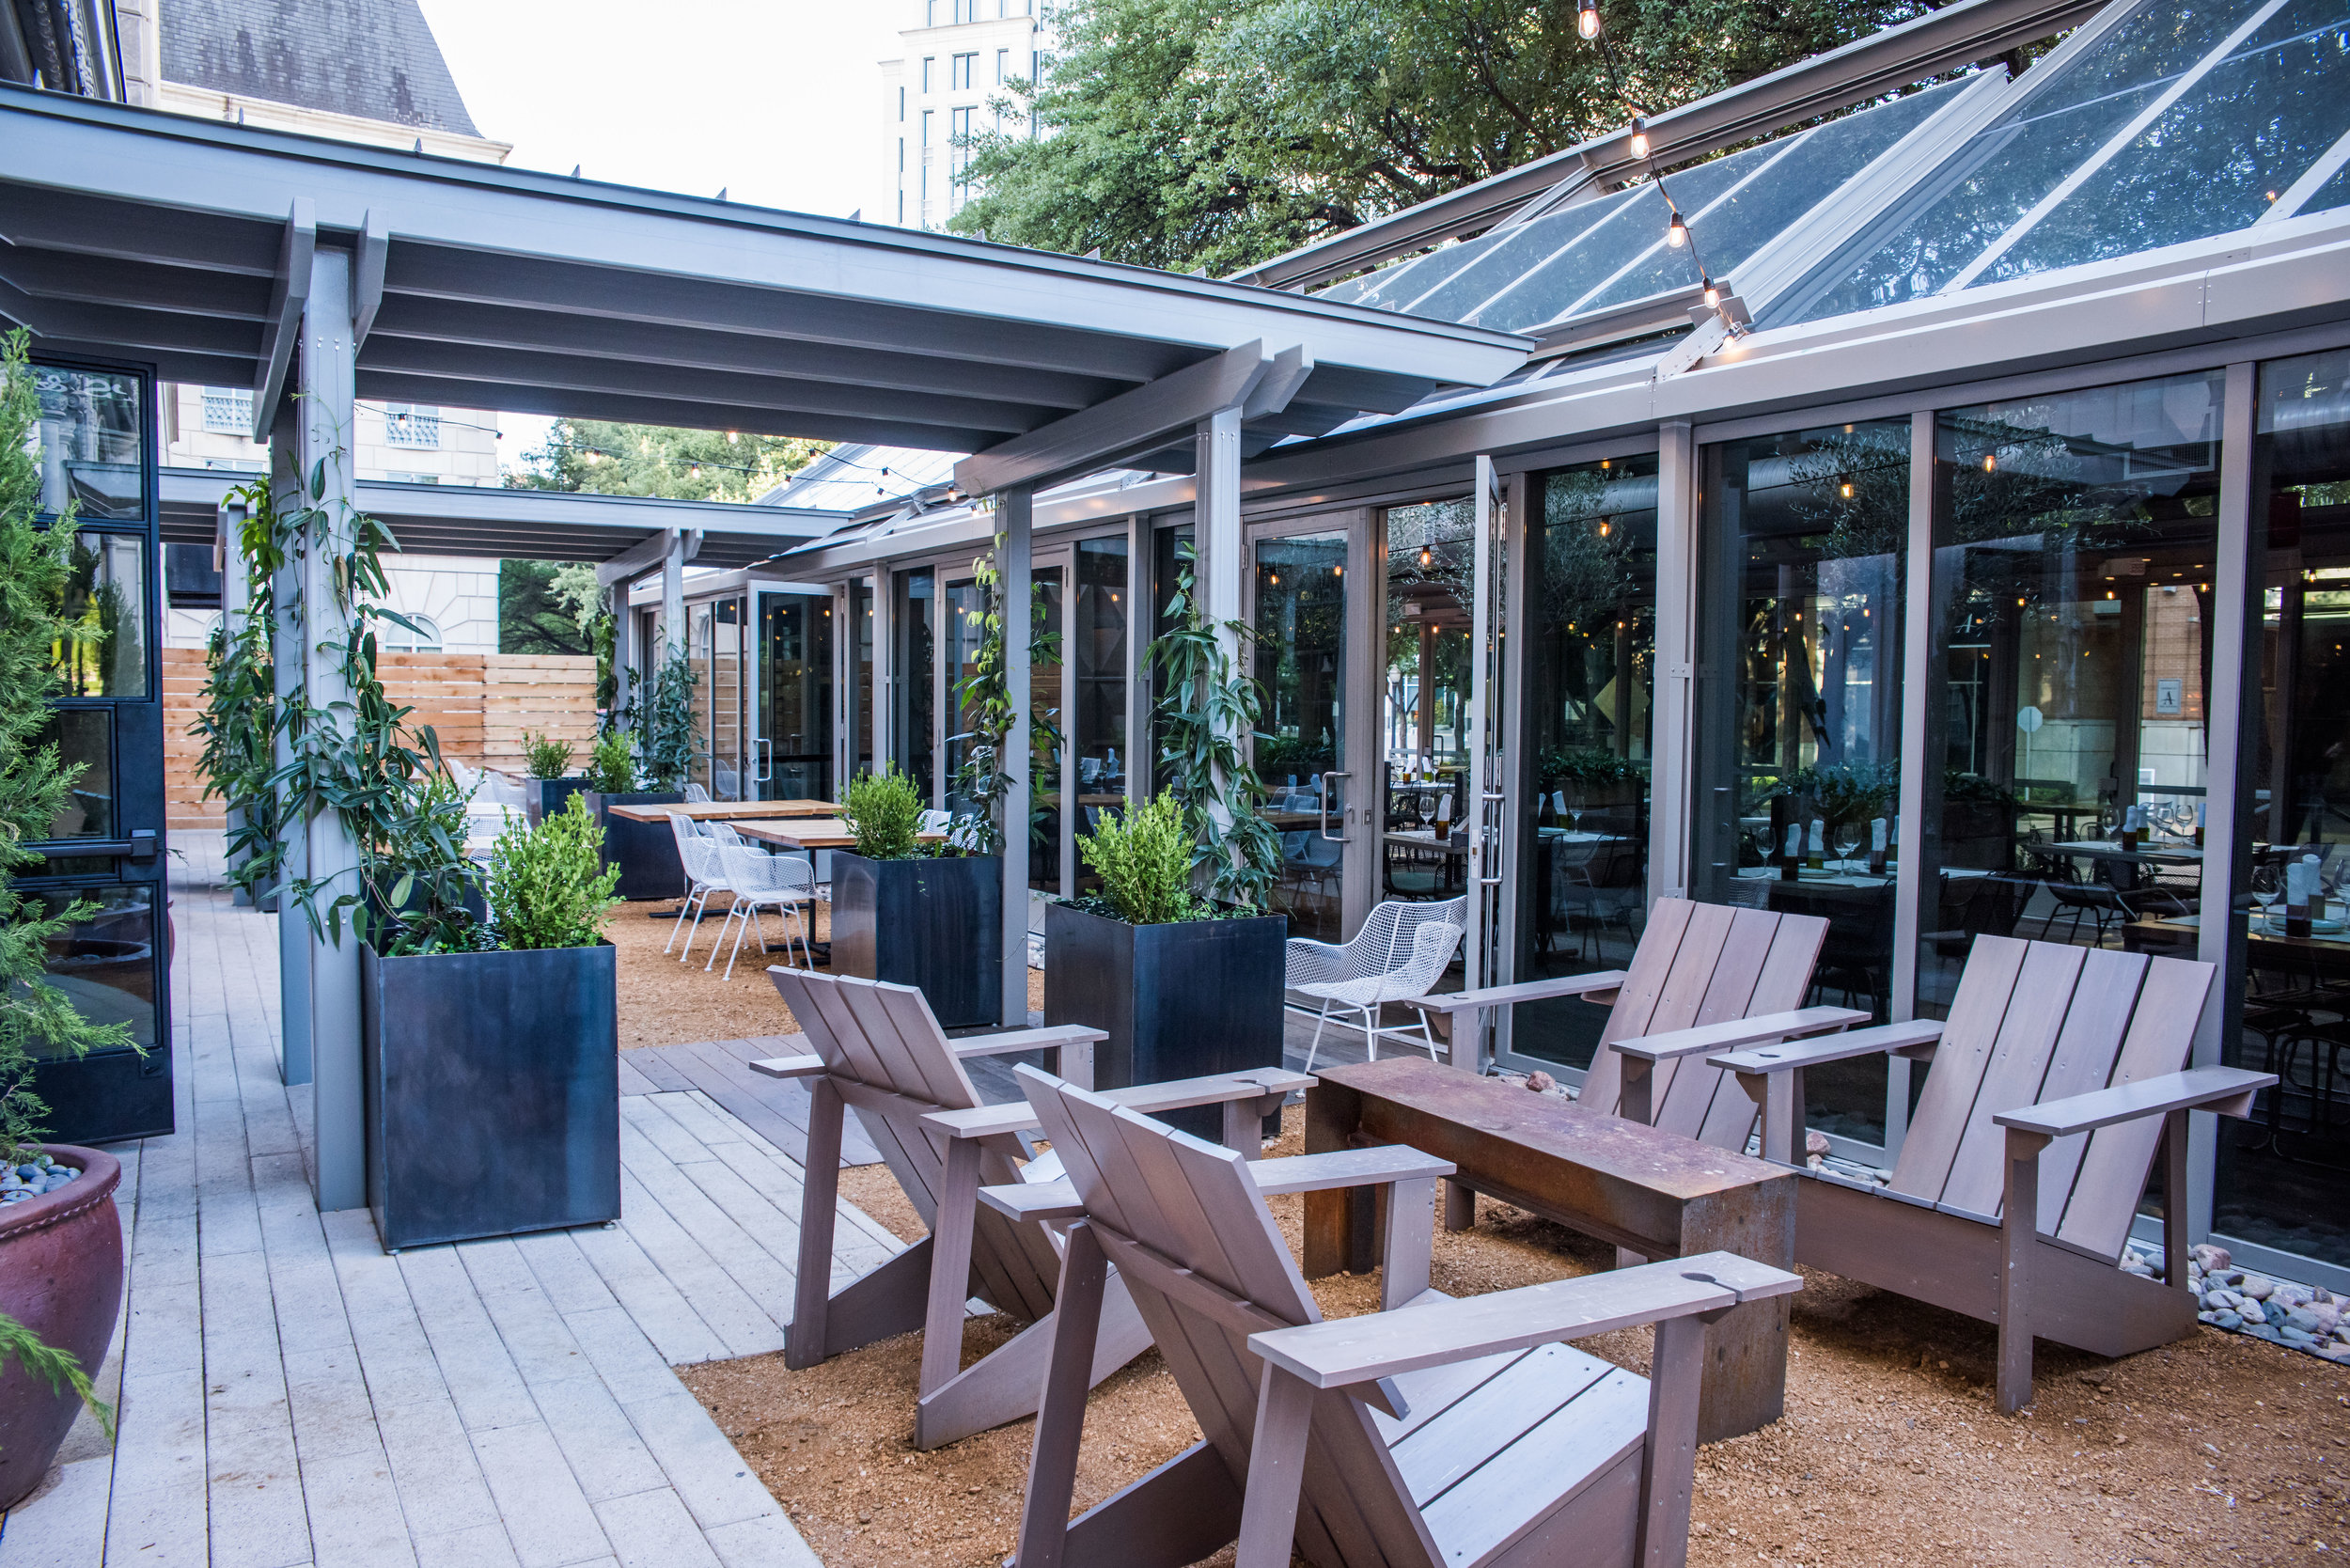 SV Uptown Outside Seating2.jpg